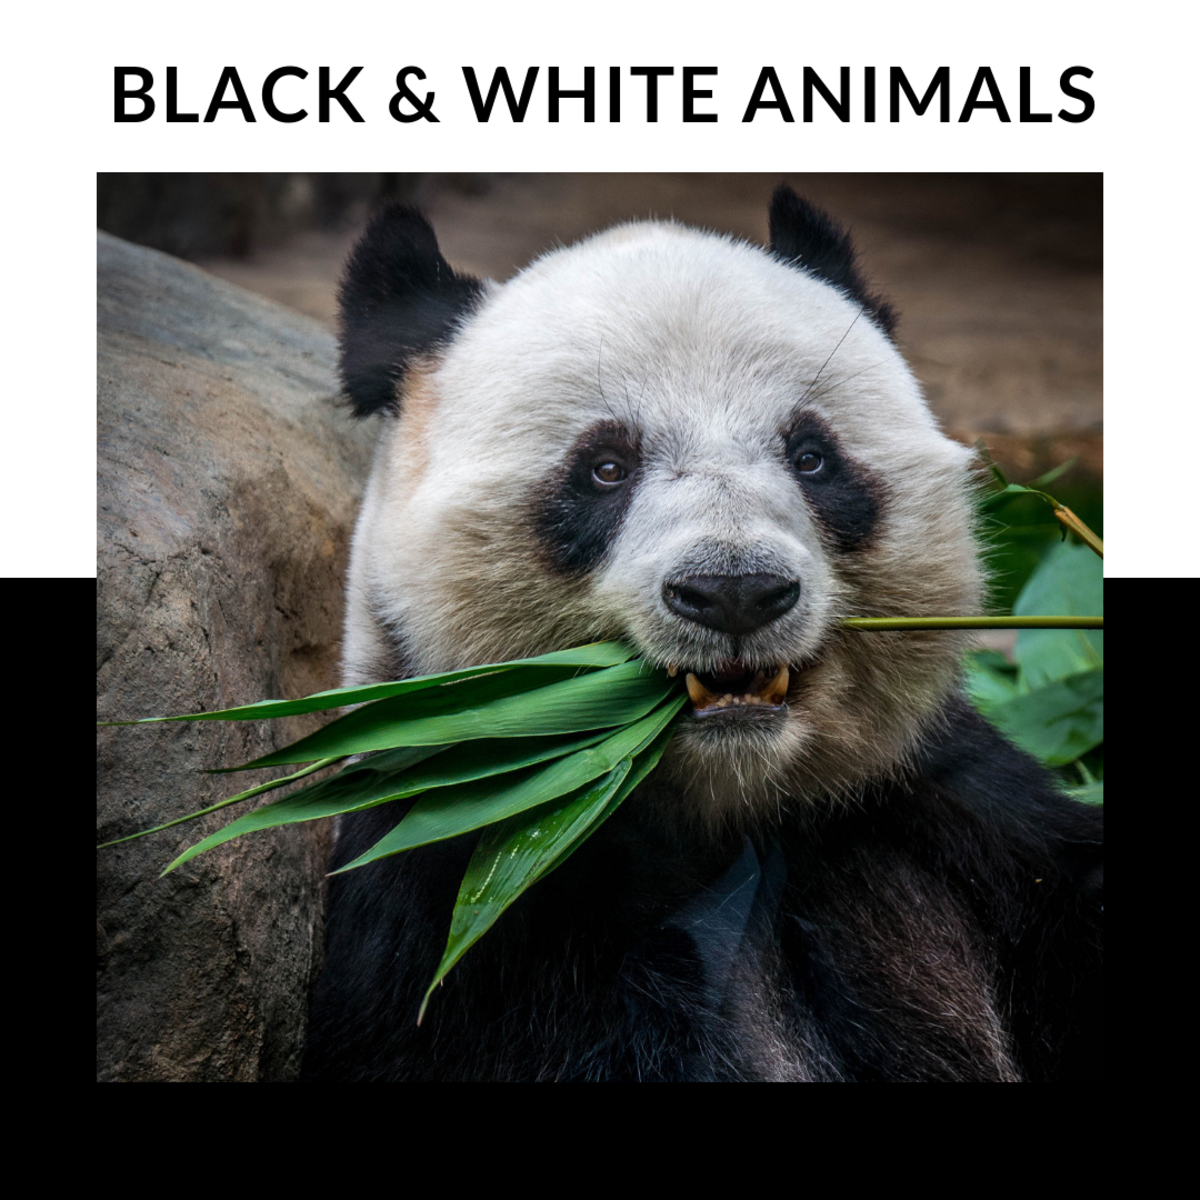 20 black and white animals names and pictures